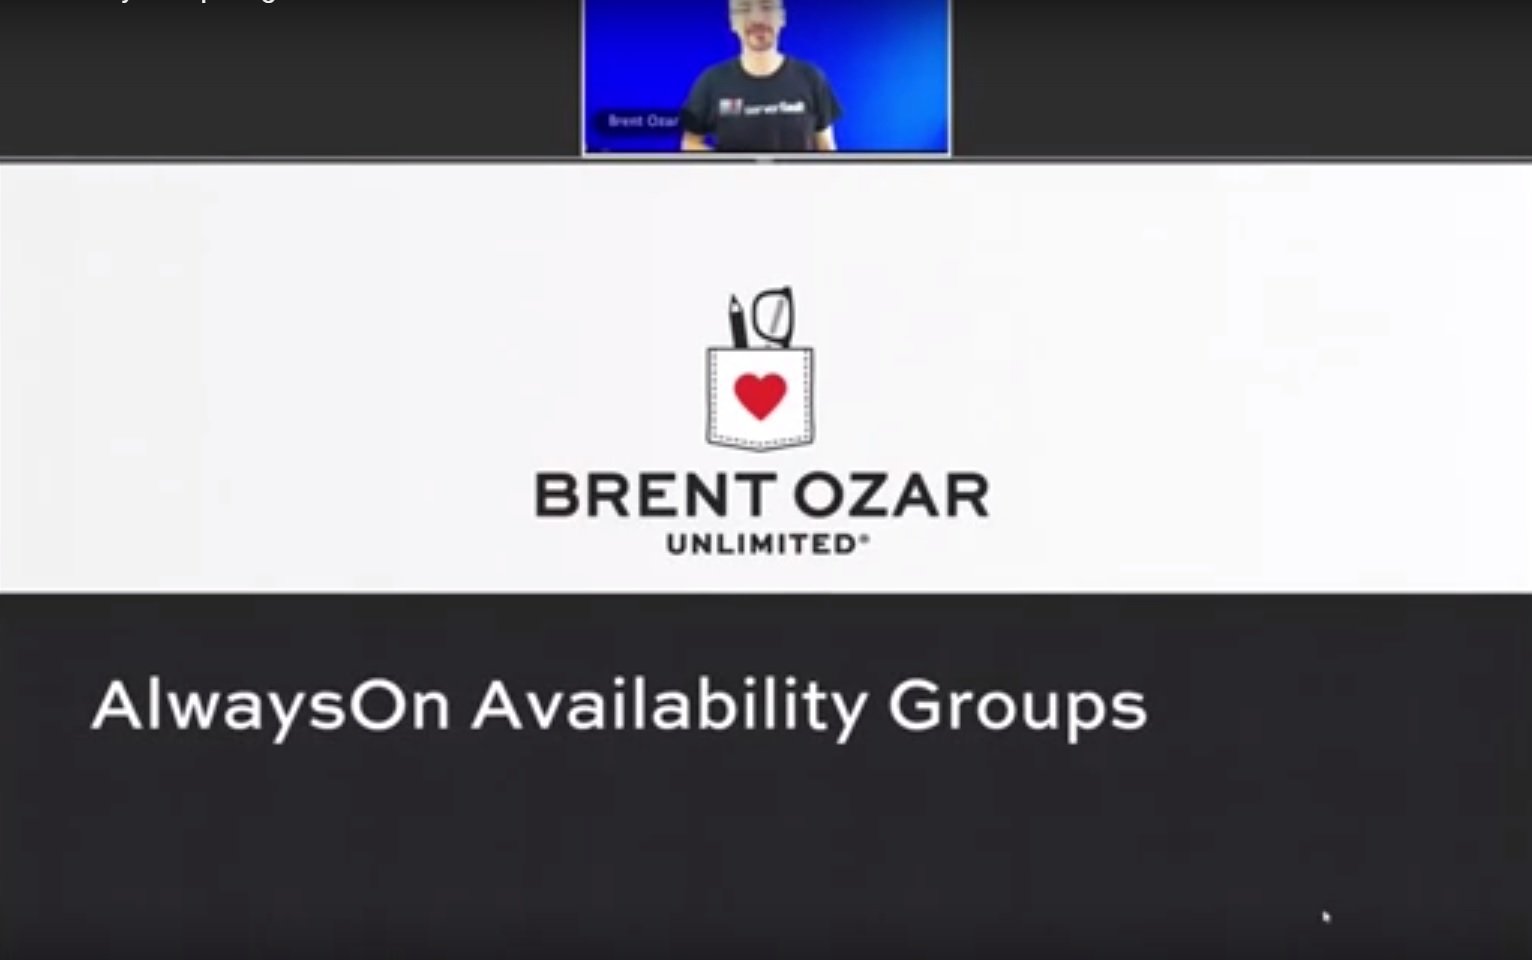 Are AlwaysOn Availability Groups Right for You? With Brent Ozar.